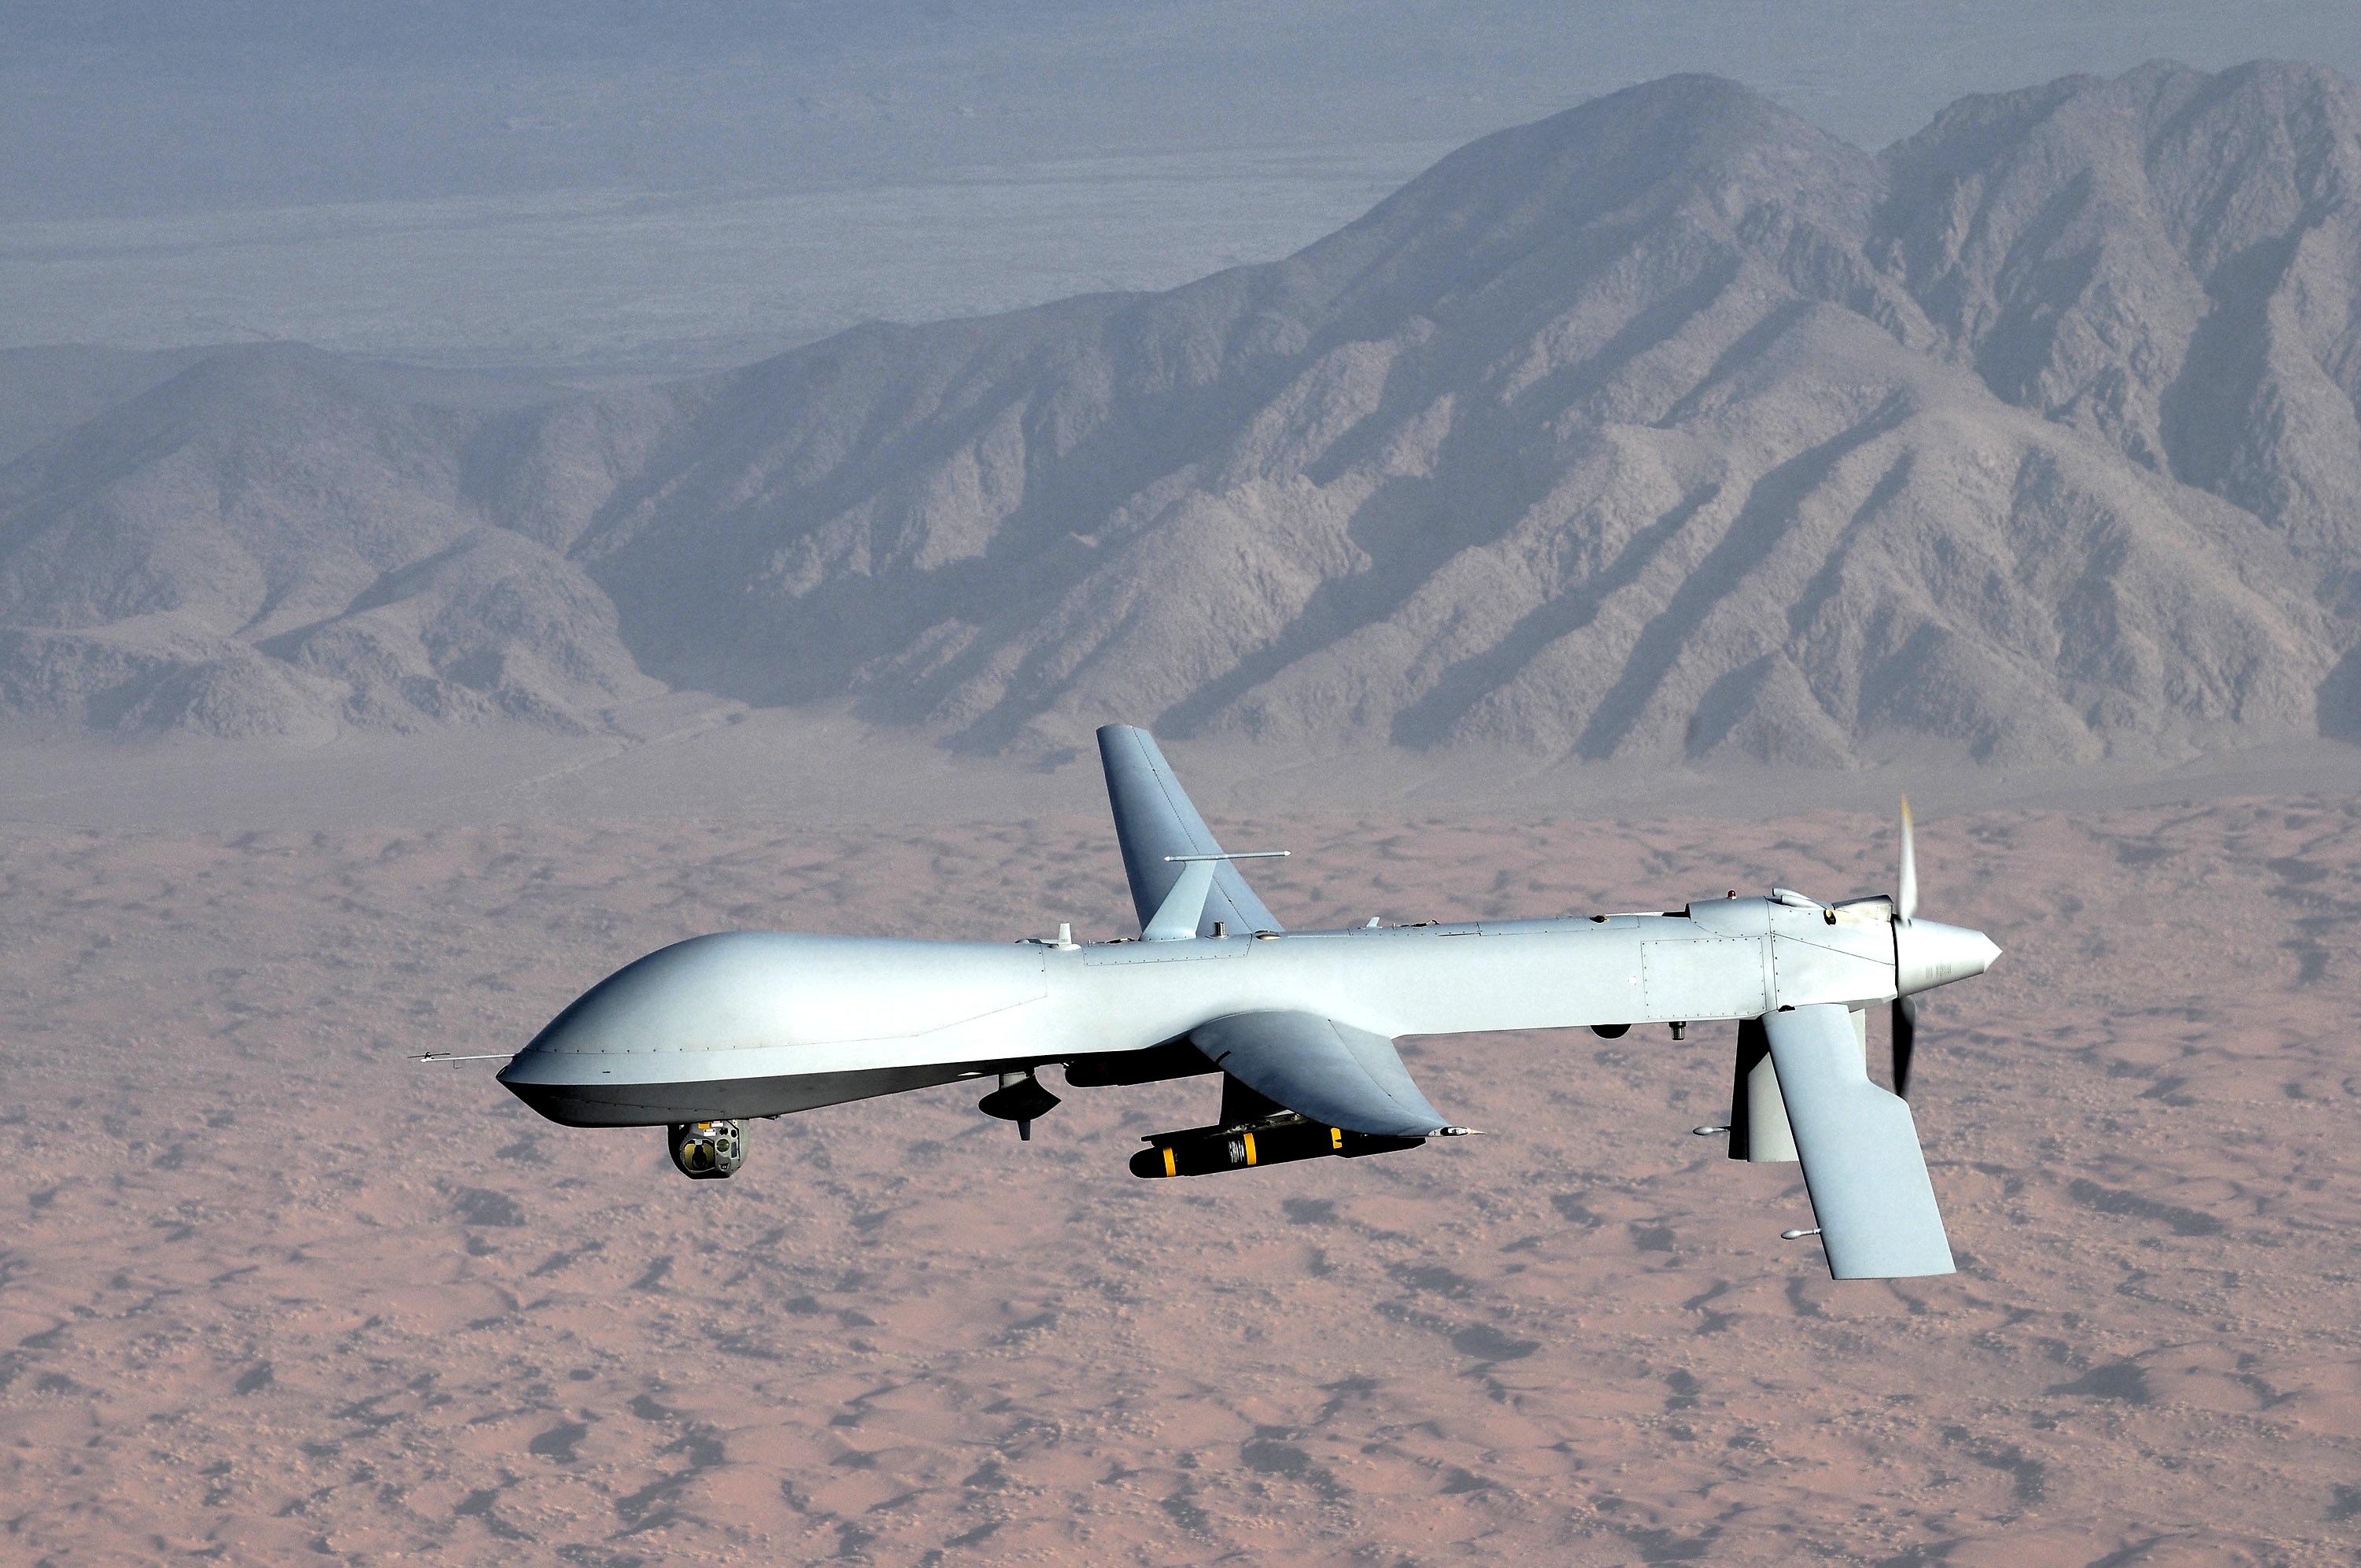 U.S. Spy Drone Forced To Leave Iranian Airspace After Warning From Iranian Government Featured